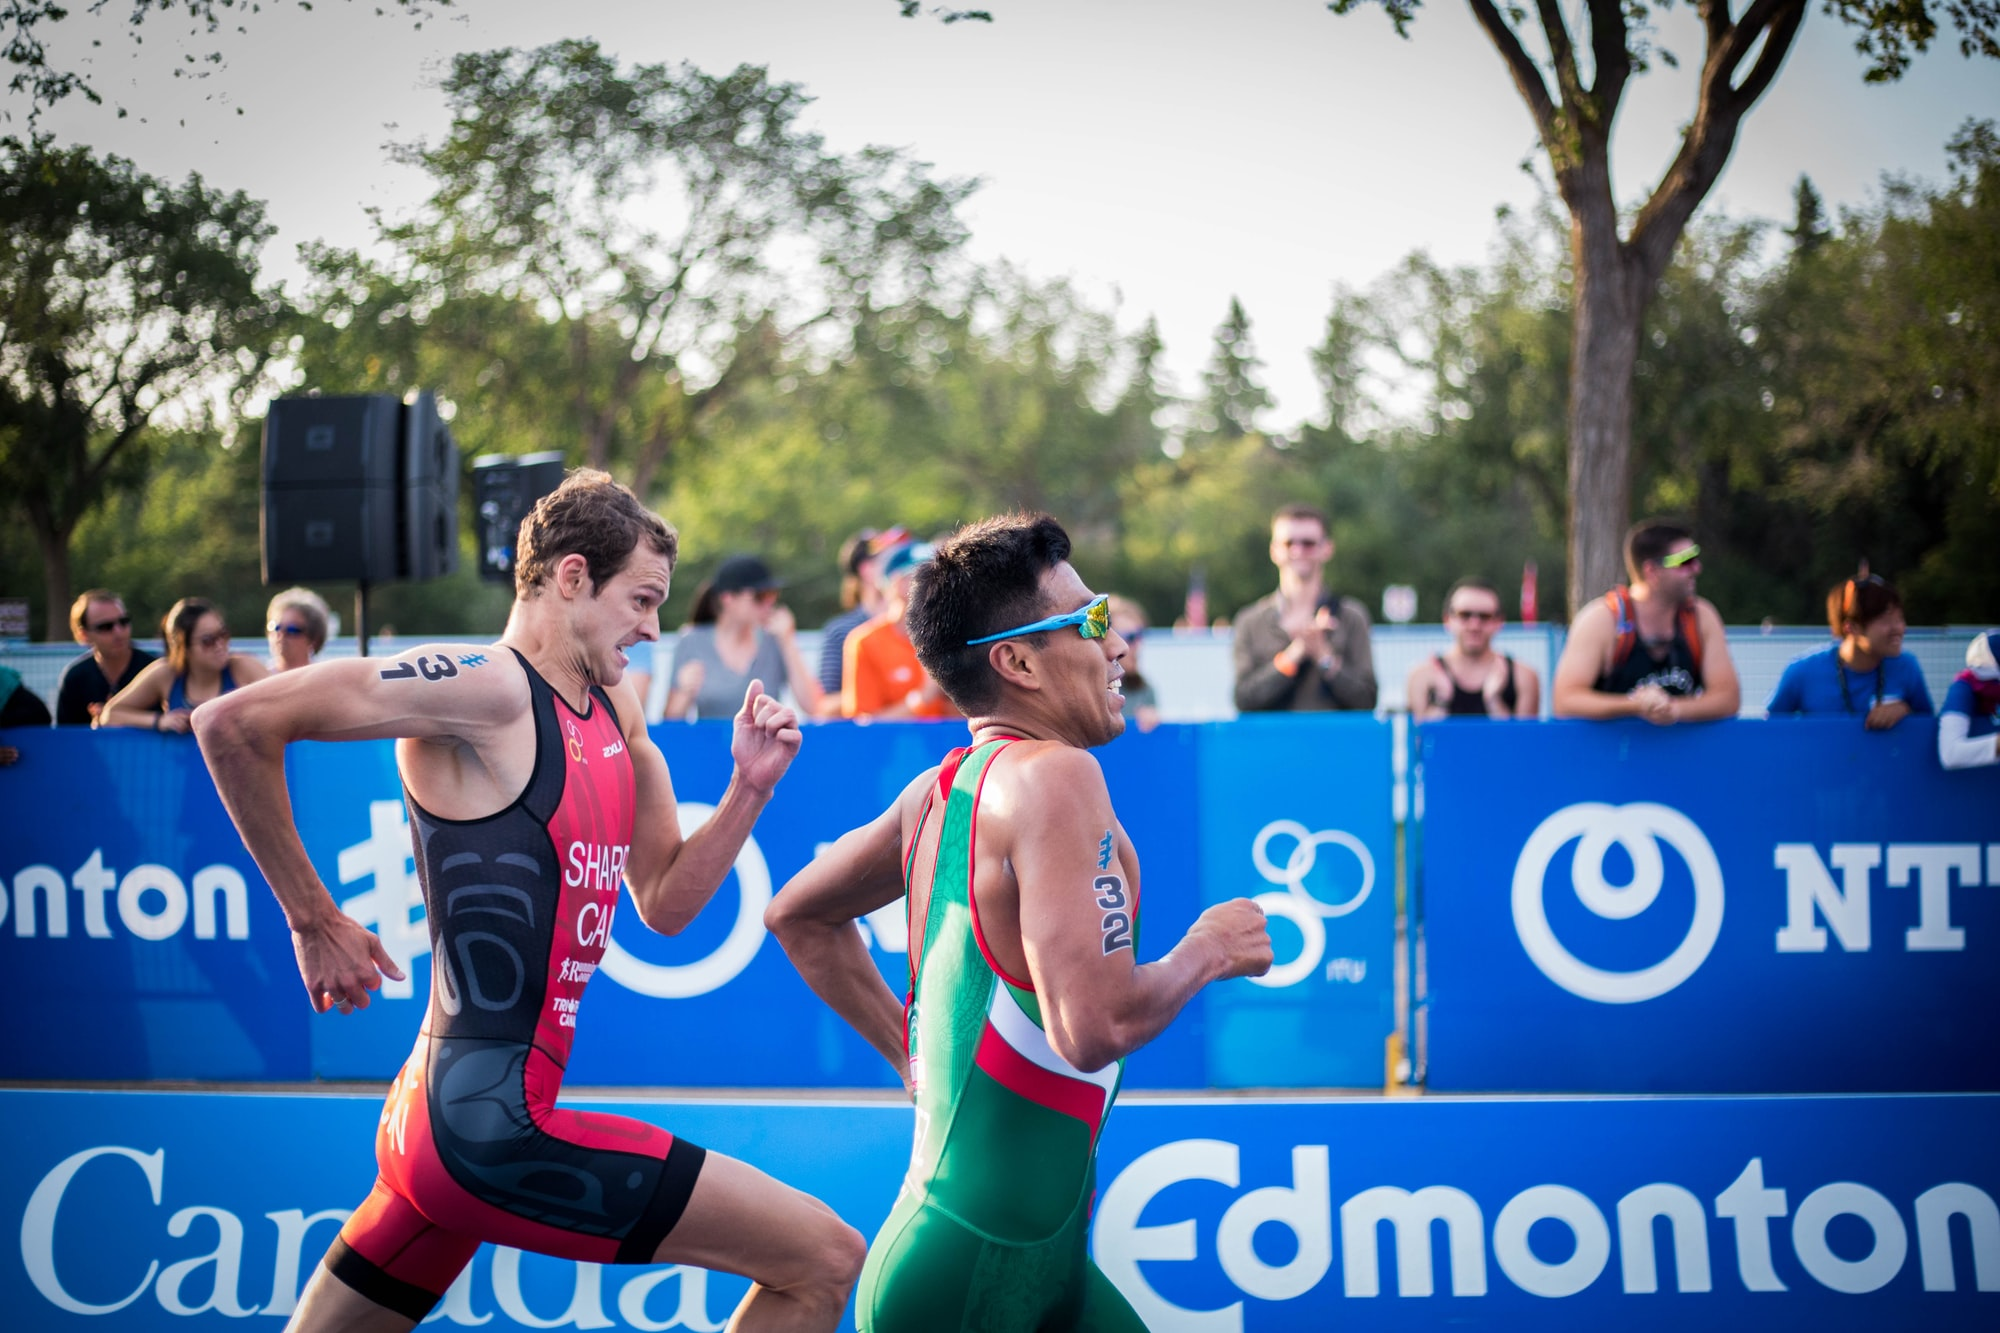 World cup triathlon, two men running, one trying to run faster than the other